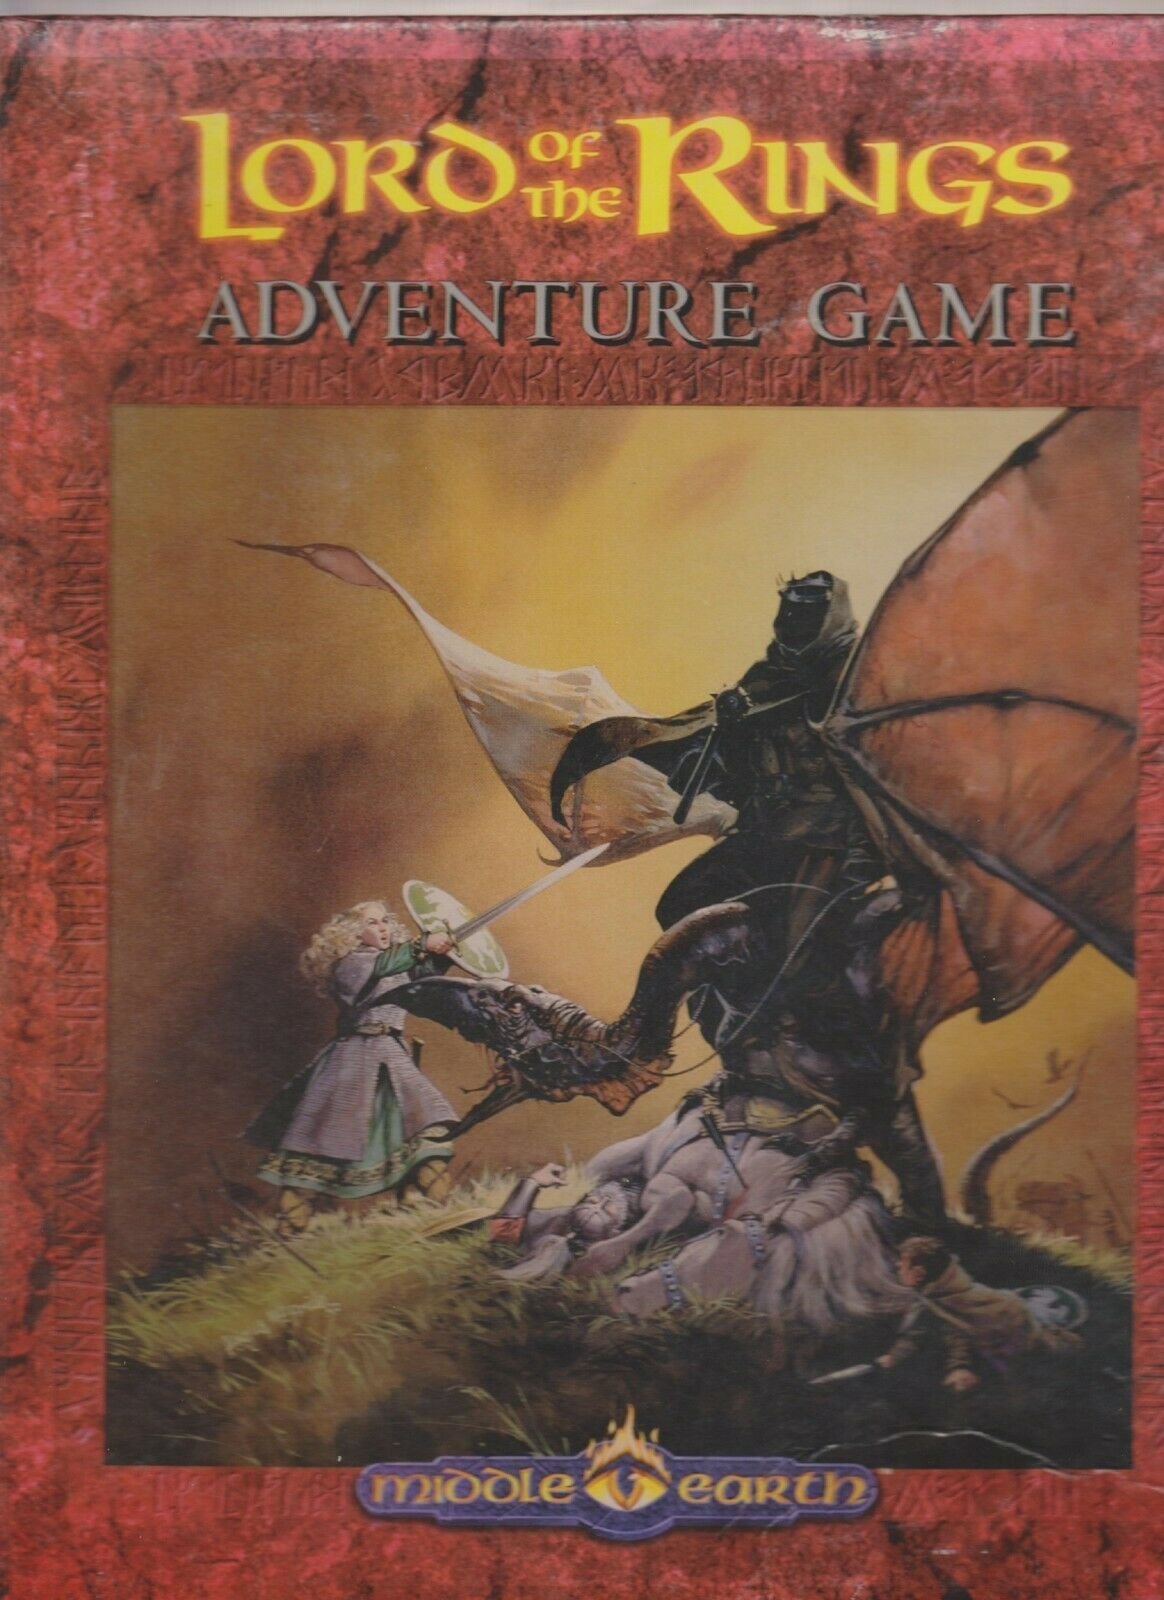 Lord of the Rings Adventure Game Dawn Dawn Dawn Comes Early ICE ST  LR0 RPG NO STANDS 3e7223